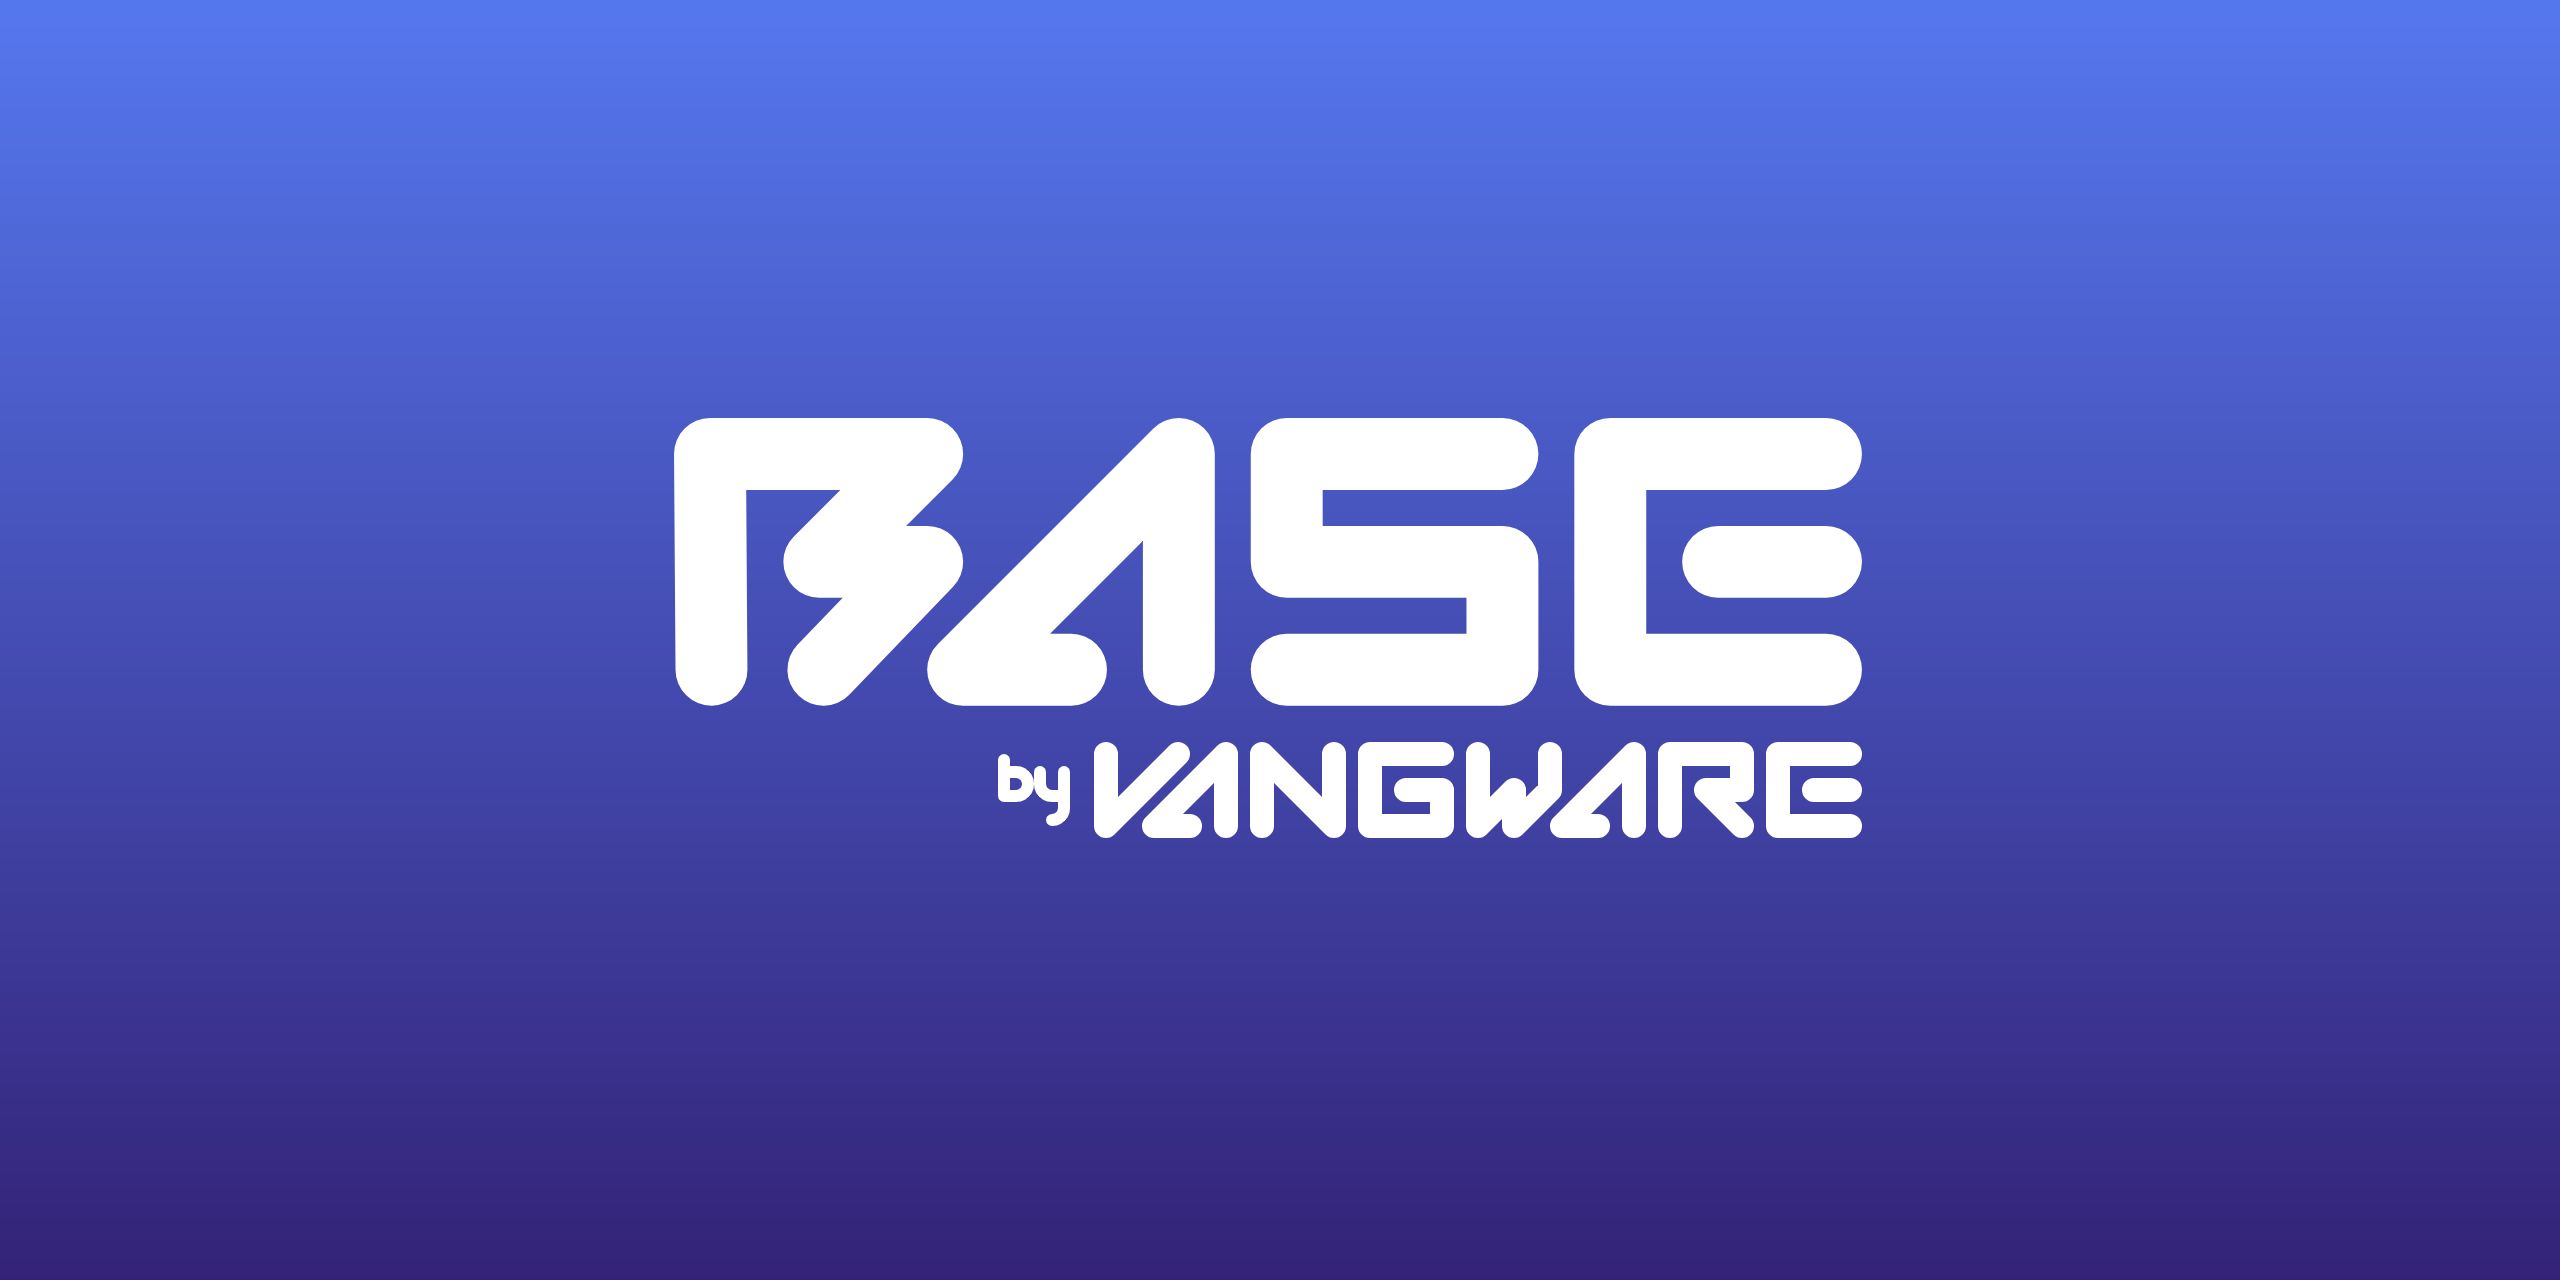 Base by Vangware